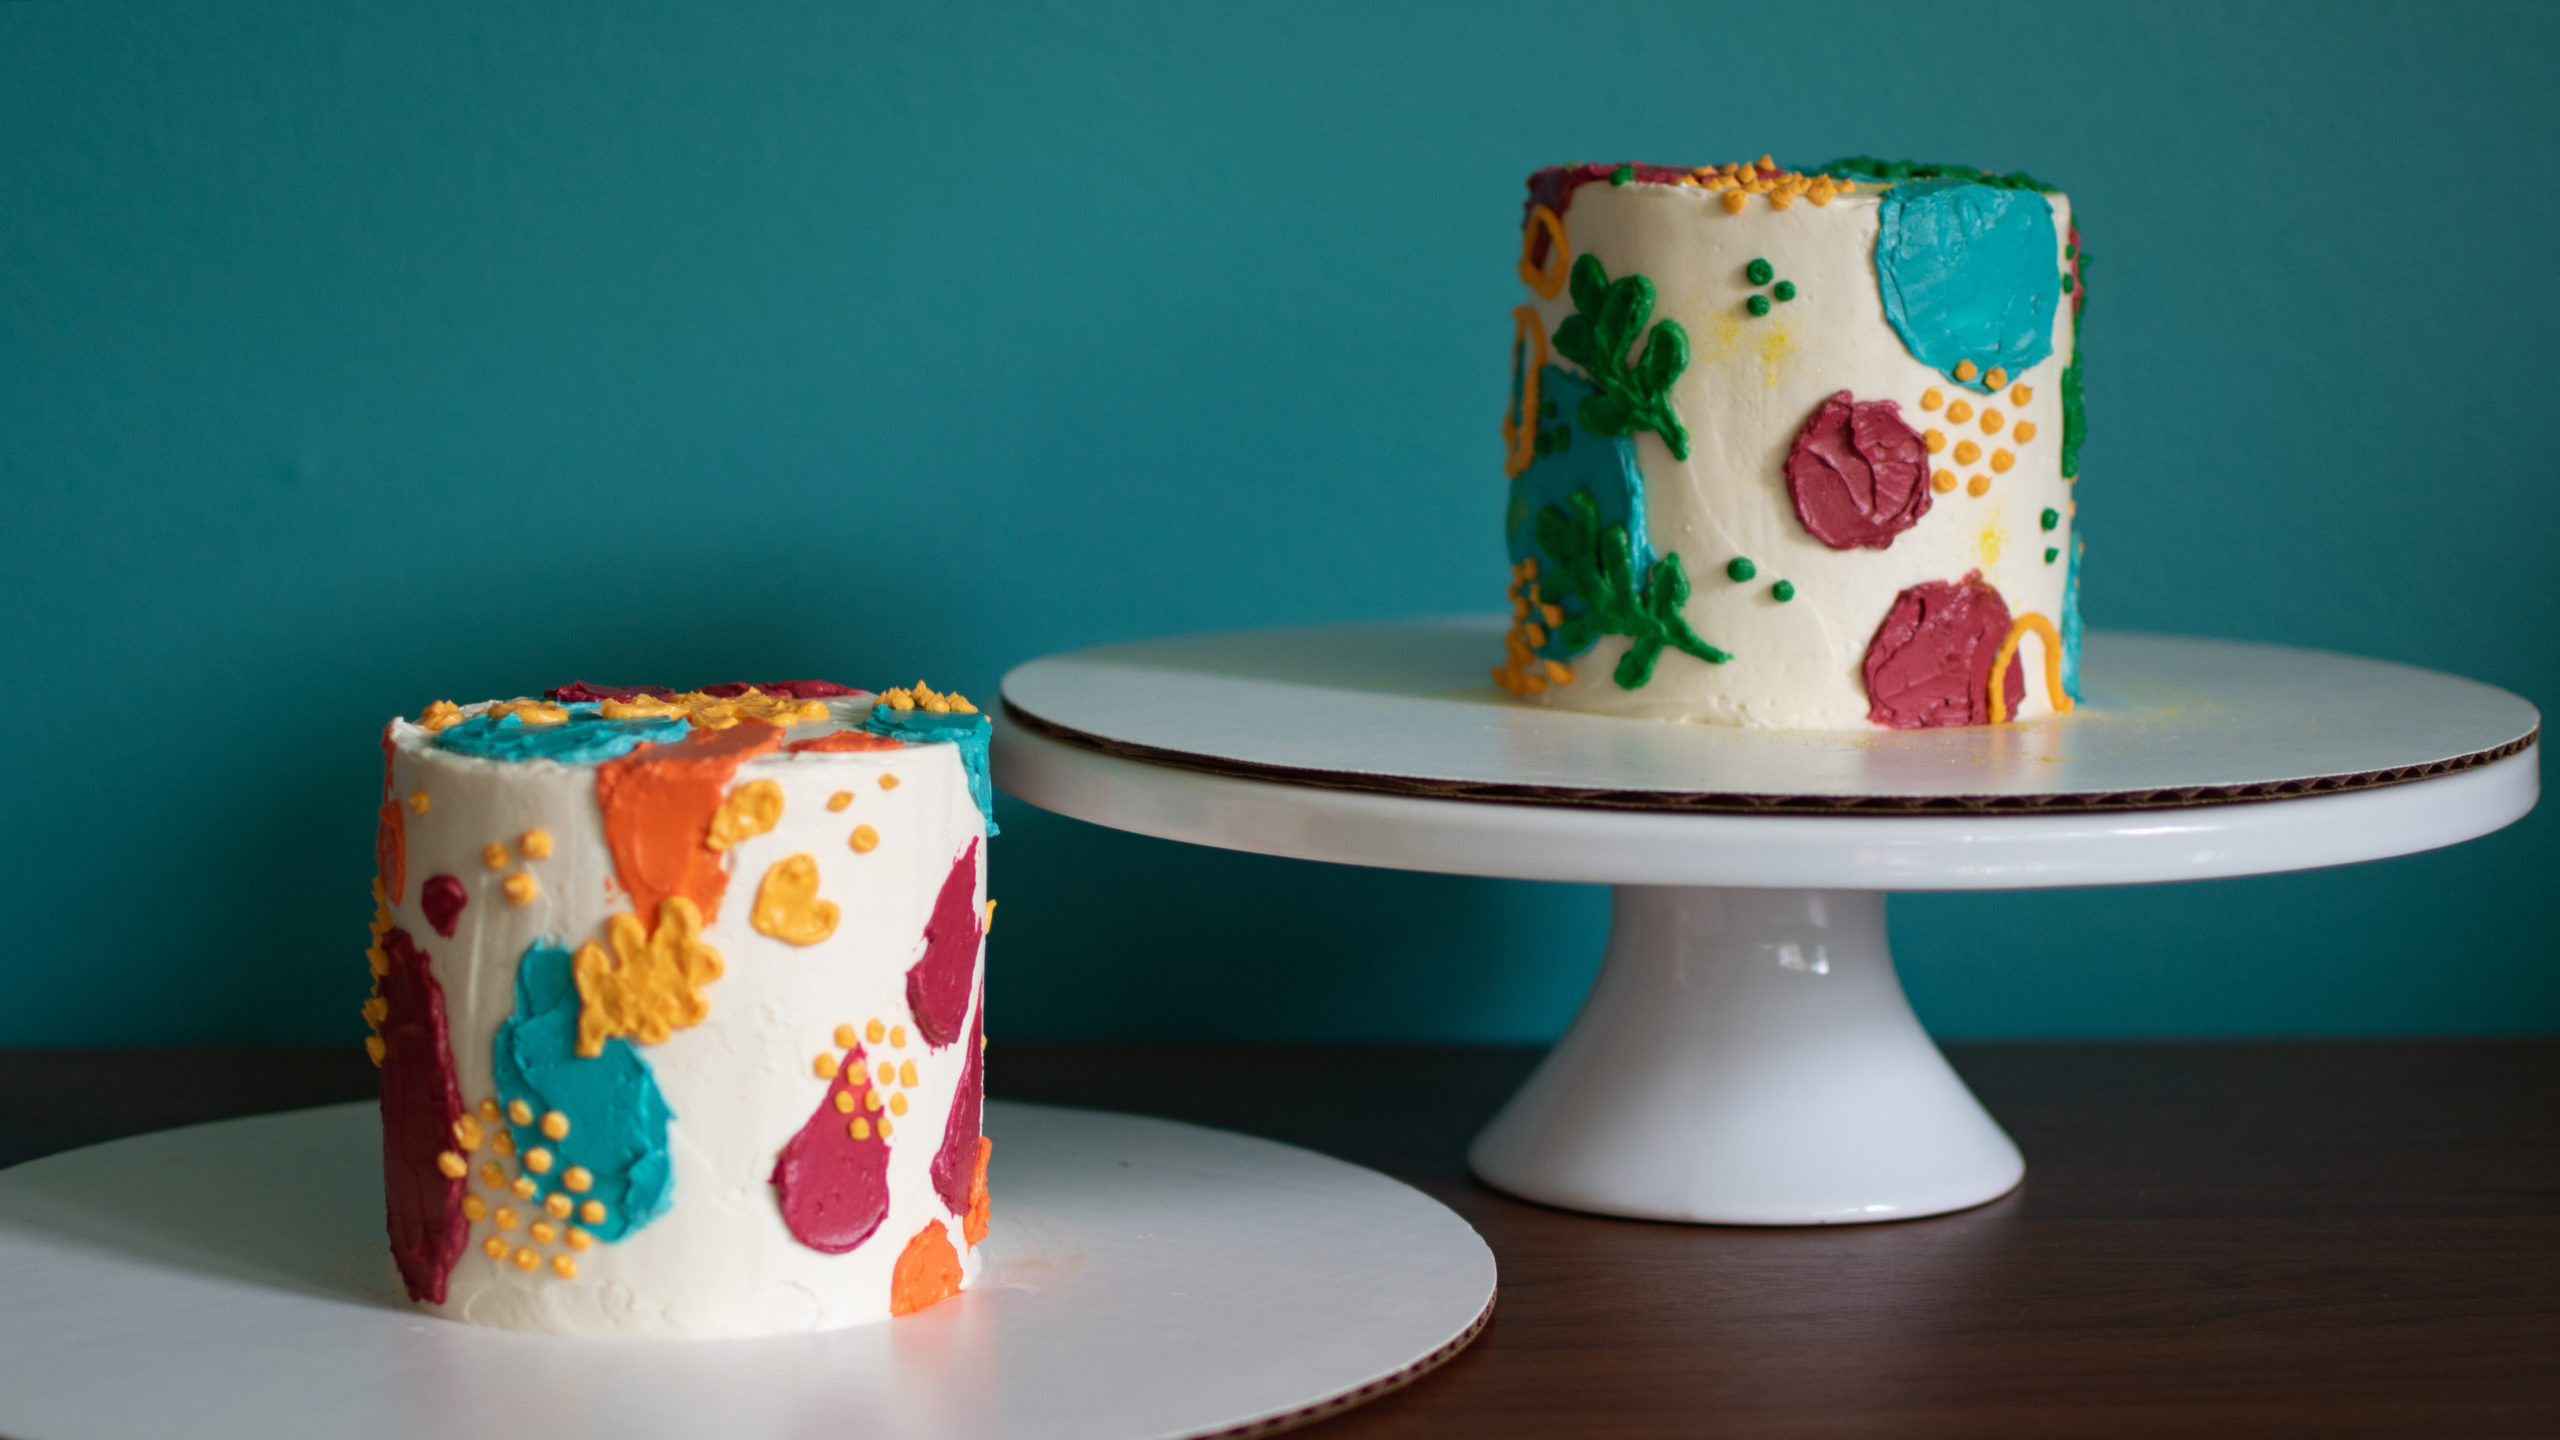 Abstract buttercream painted cakes